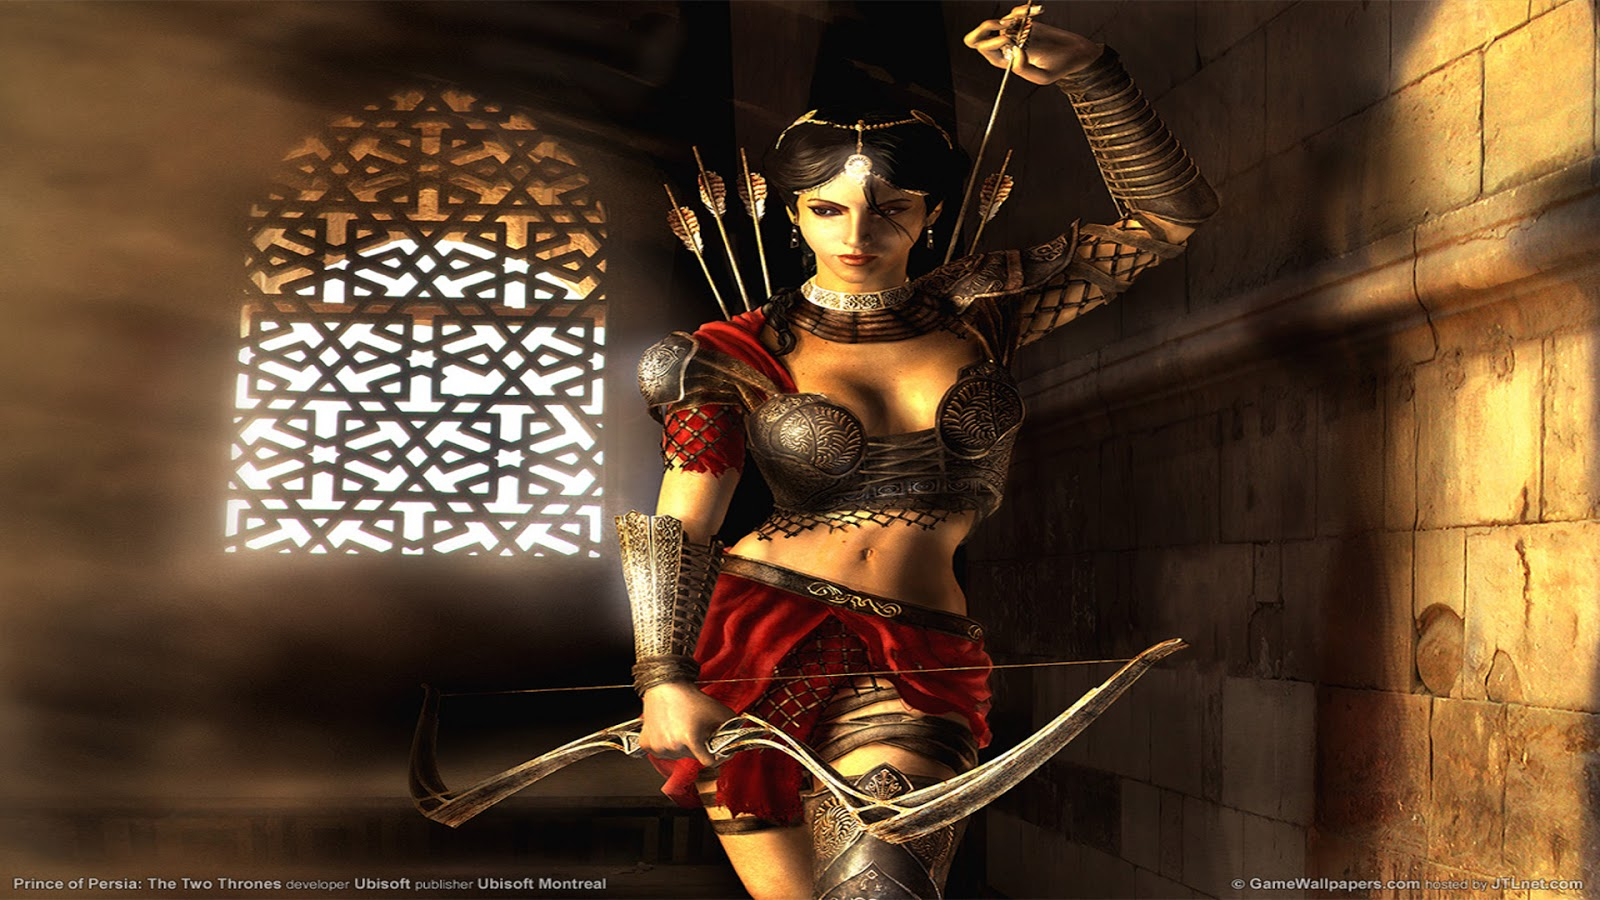 Prince of persia game nude imager erotic photo